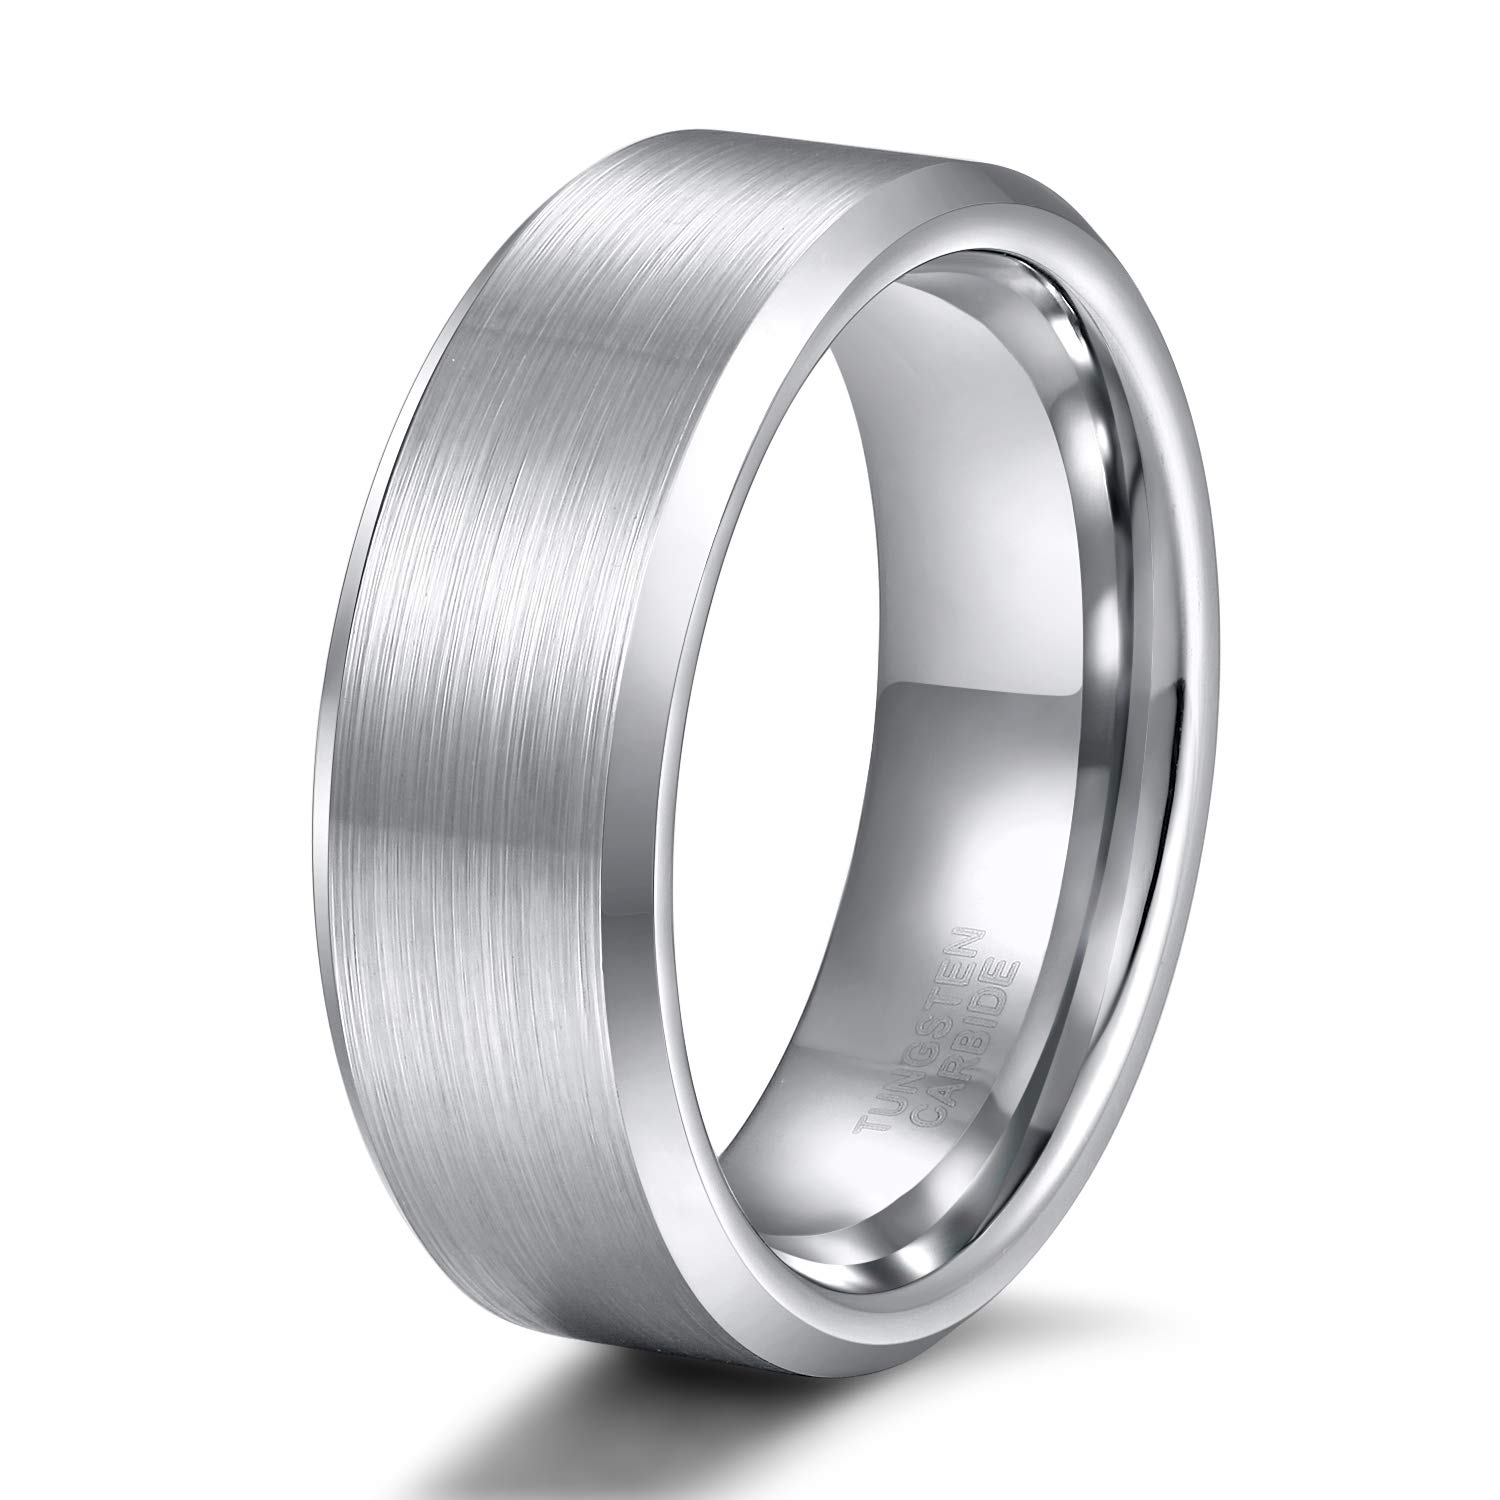 Shuremaster 8mm Mens Womens Tungsten Ring Beveled Edge Brushed Silver Wedding Band Comfort Fit Size 11